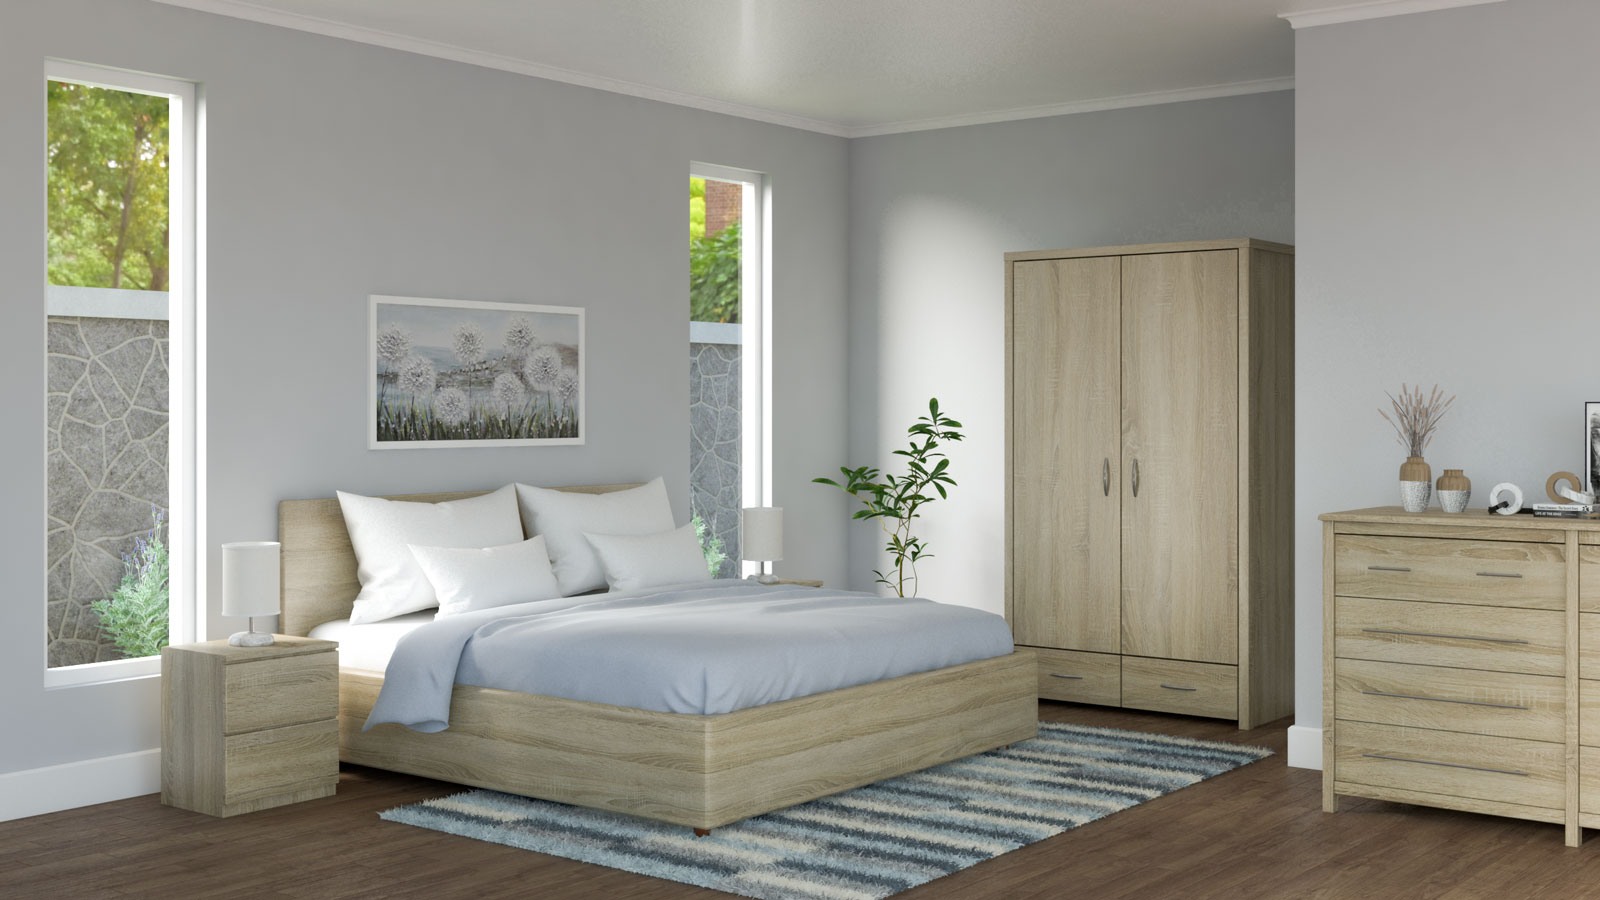 White and light blue bedding in bedroom with oak furnishings